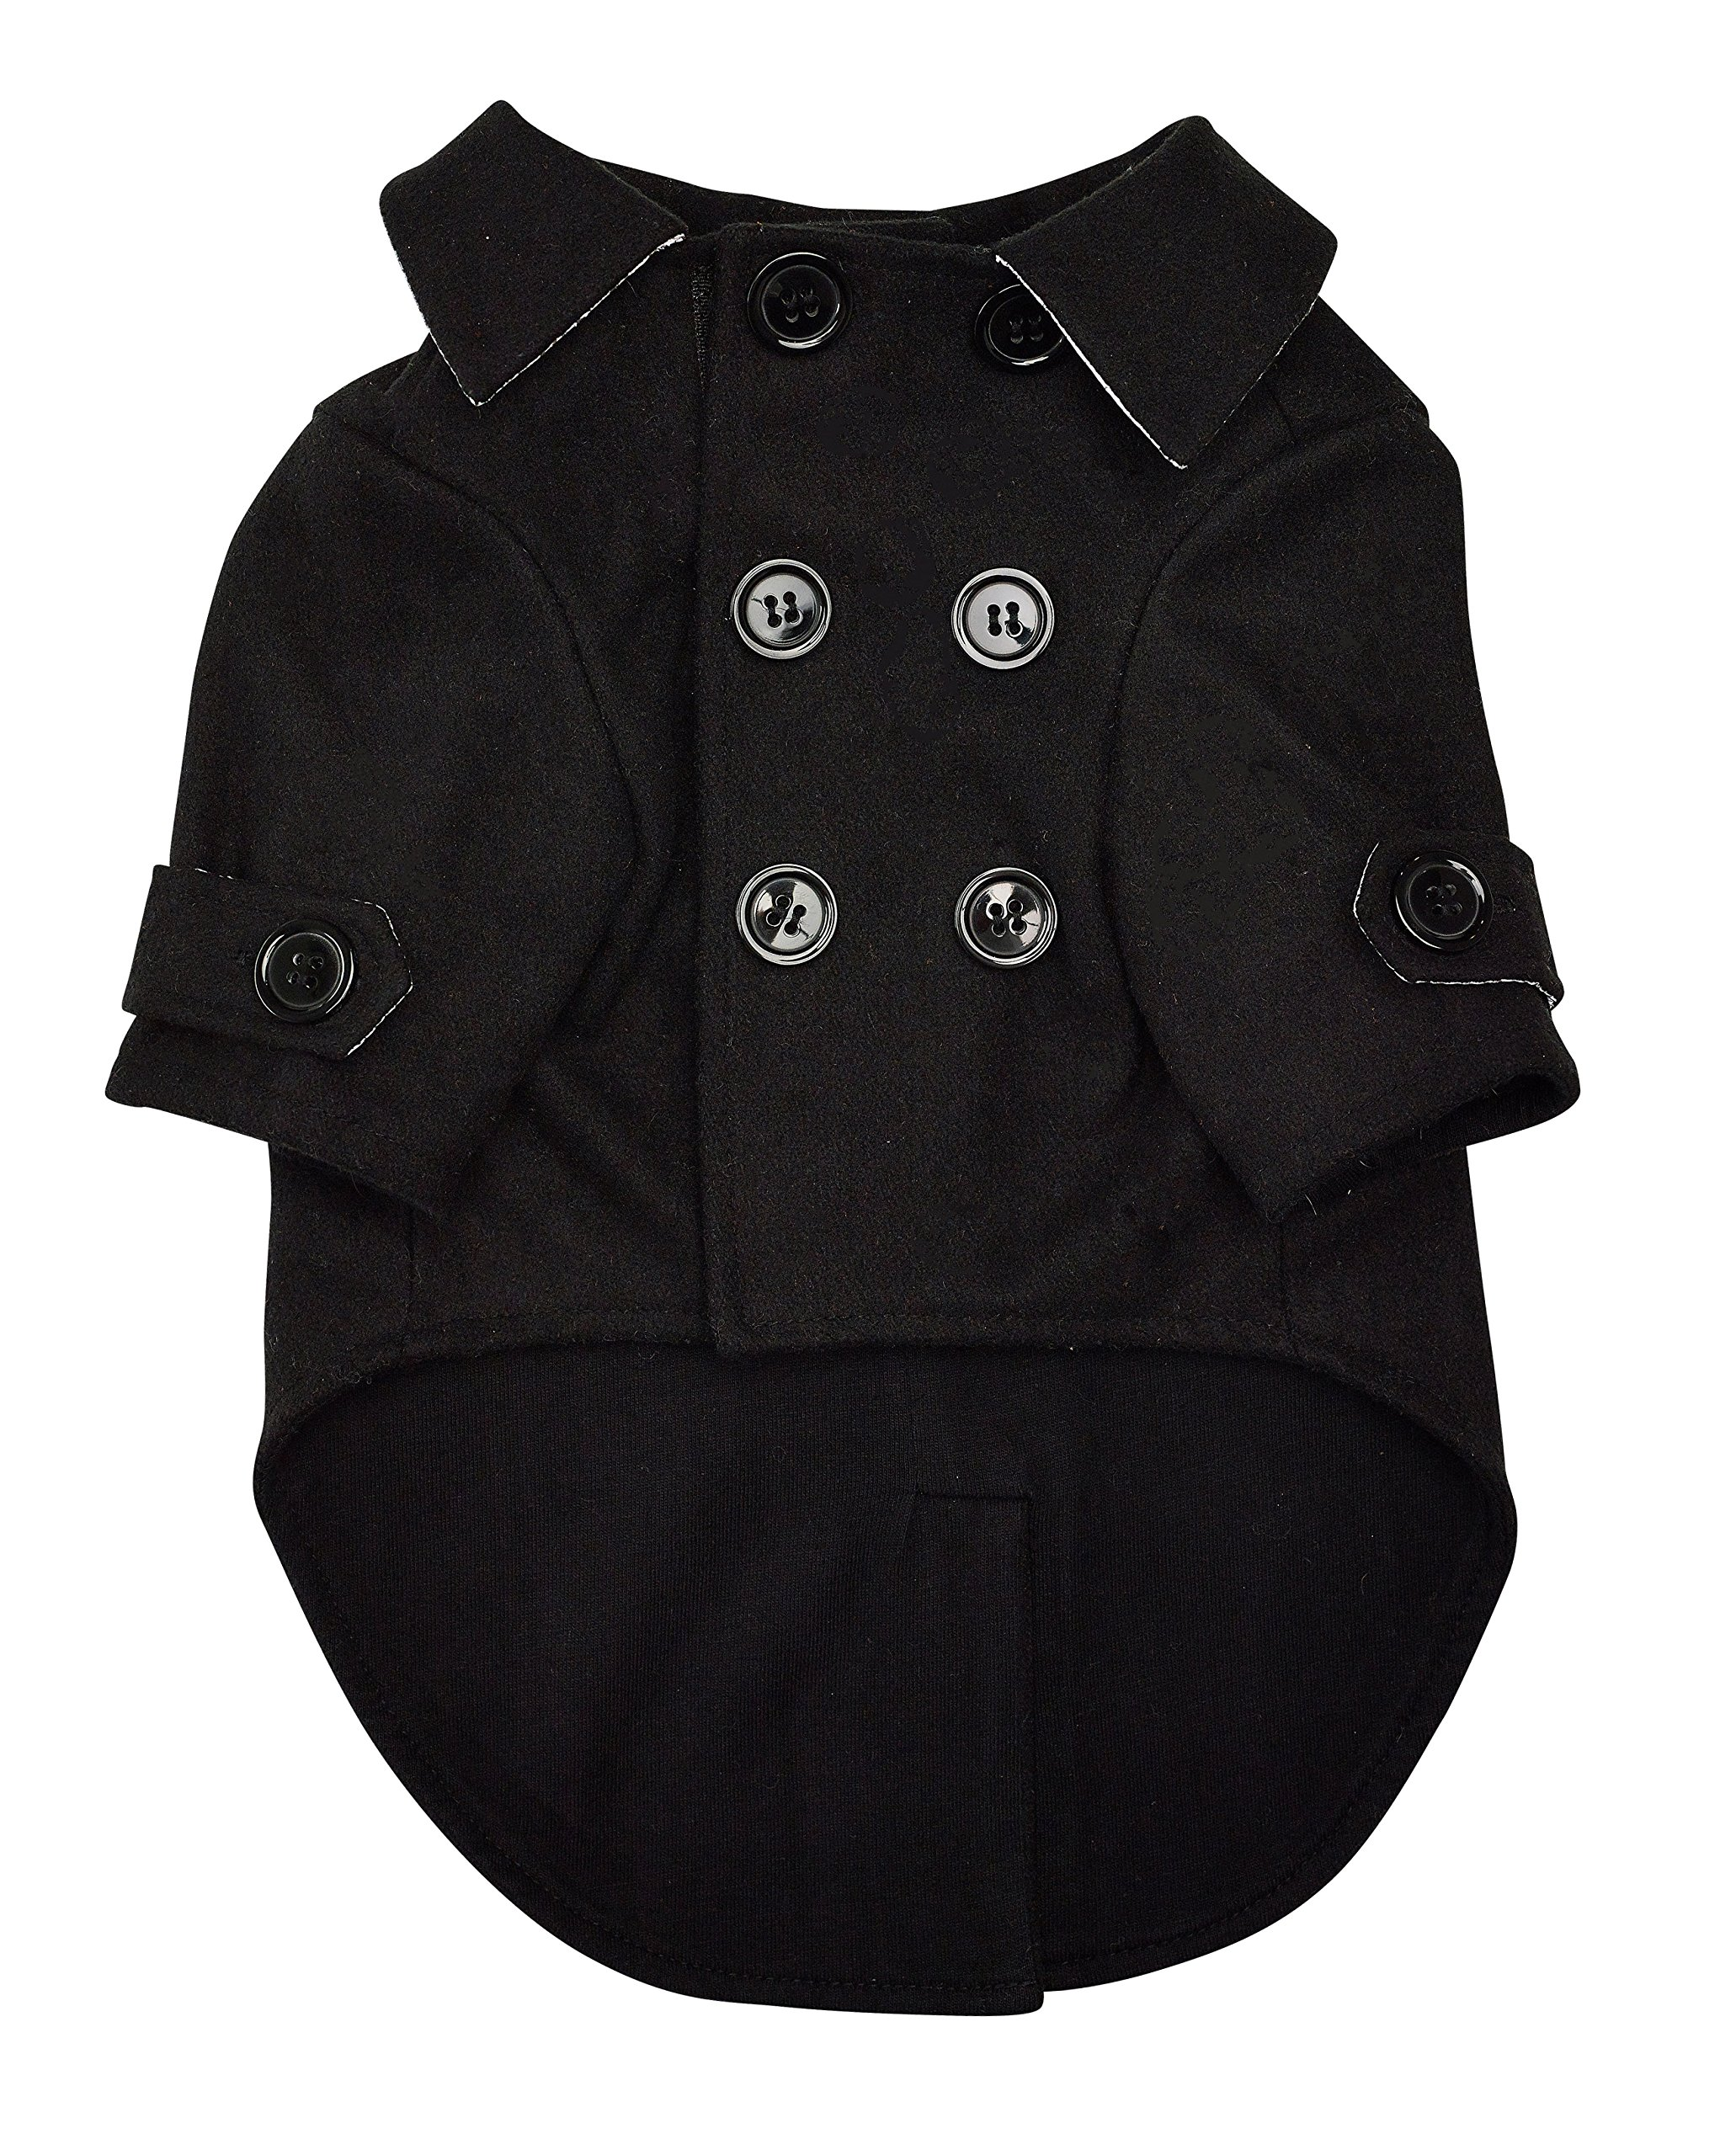 Ellie Dog Wear The Wallstreet Peacoat with Reflectors for Night Visibility and Adjustable Hook & Loop Straps - Available in Sizes Extra Small to Extra Large. Comfortable Winter Dog Clothing (S)